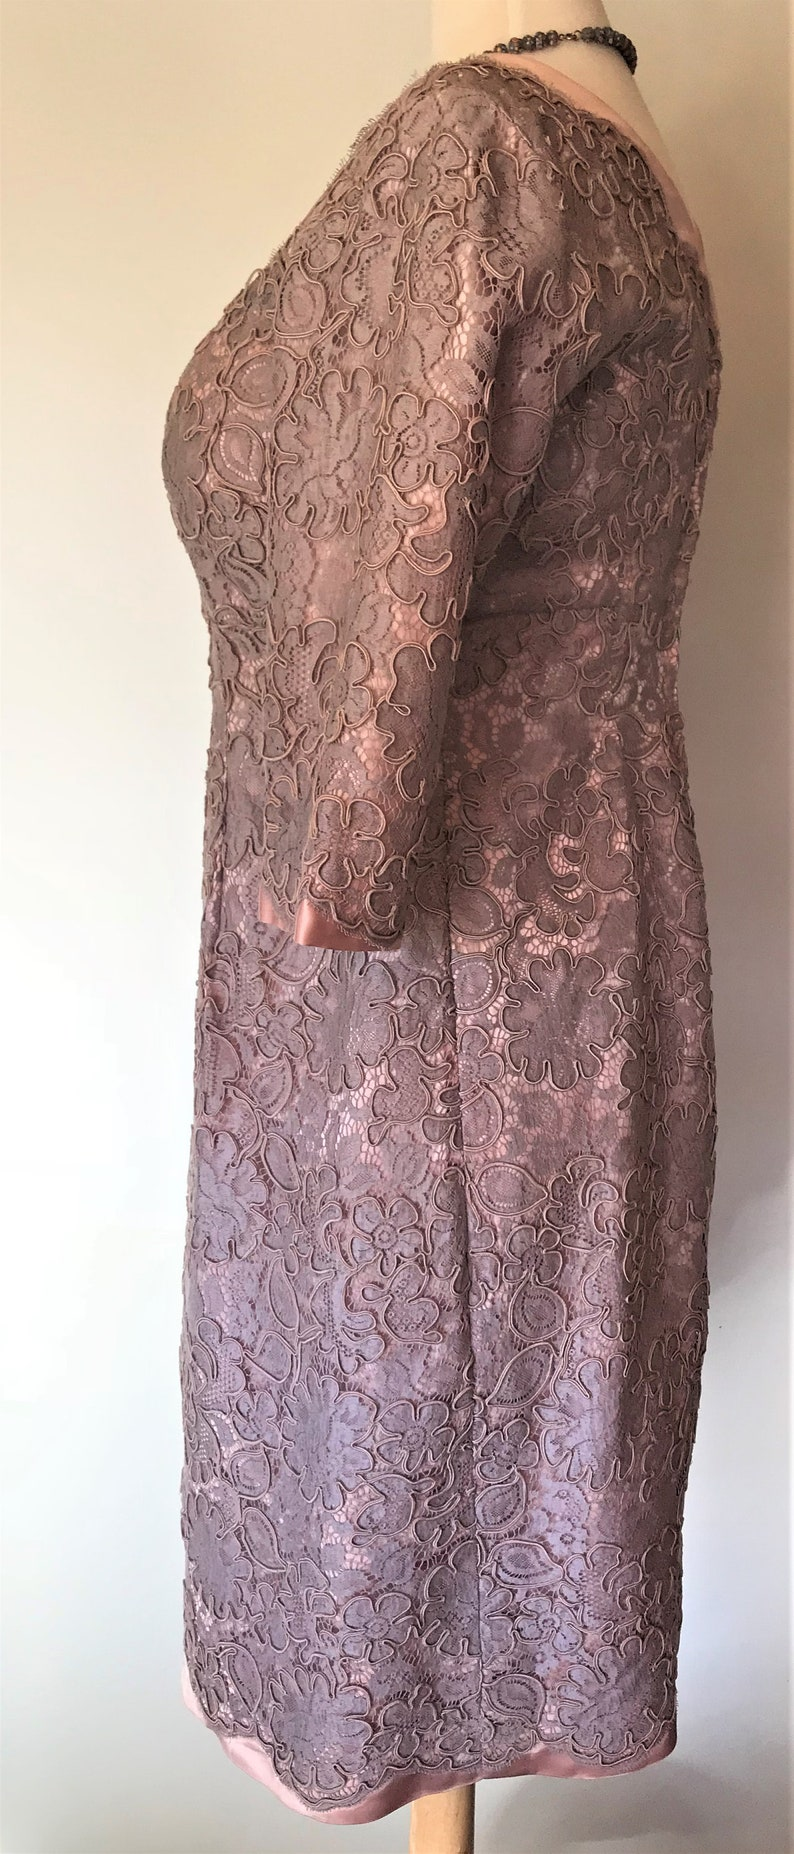 1950/'s Vintage Classic Formal Retro Wiggle Dress Custom-Made in Mushroom Pink Corded Lace over Satin with 34 Sleeves